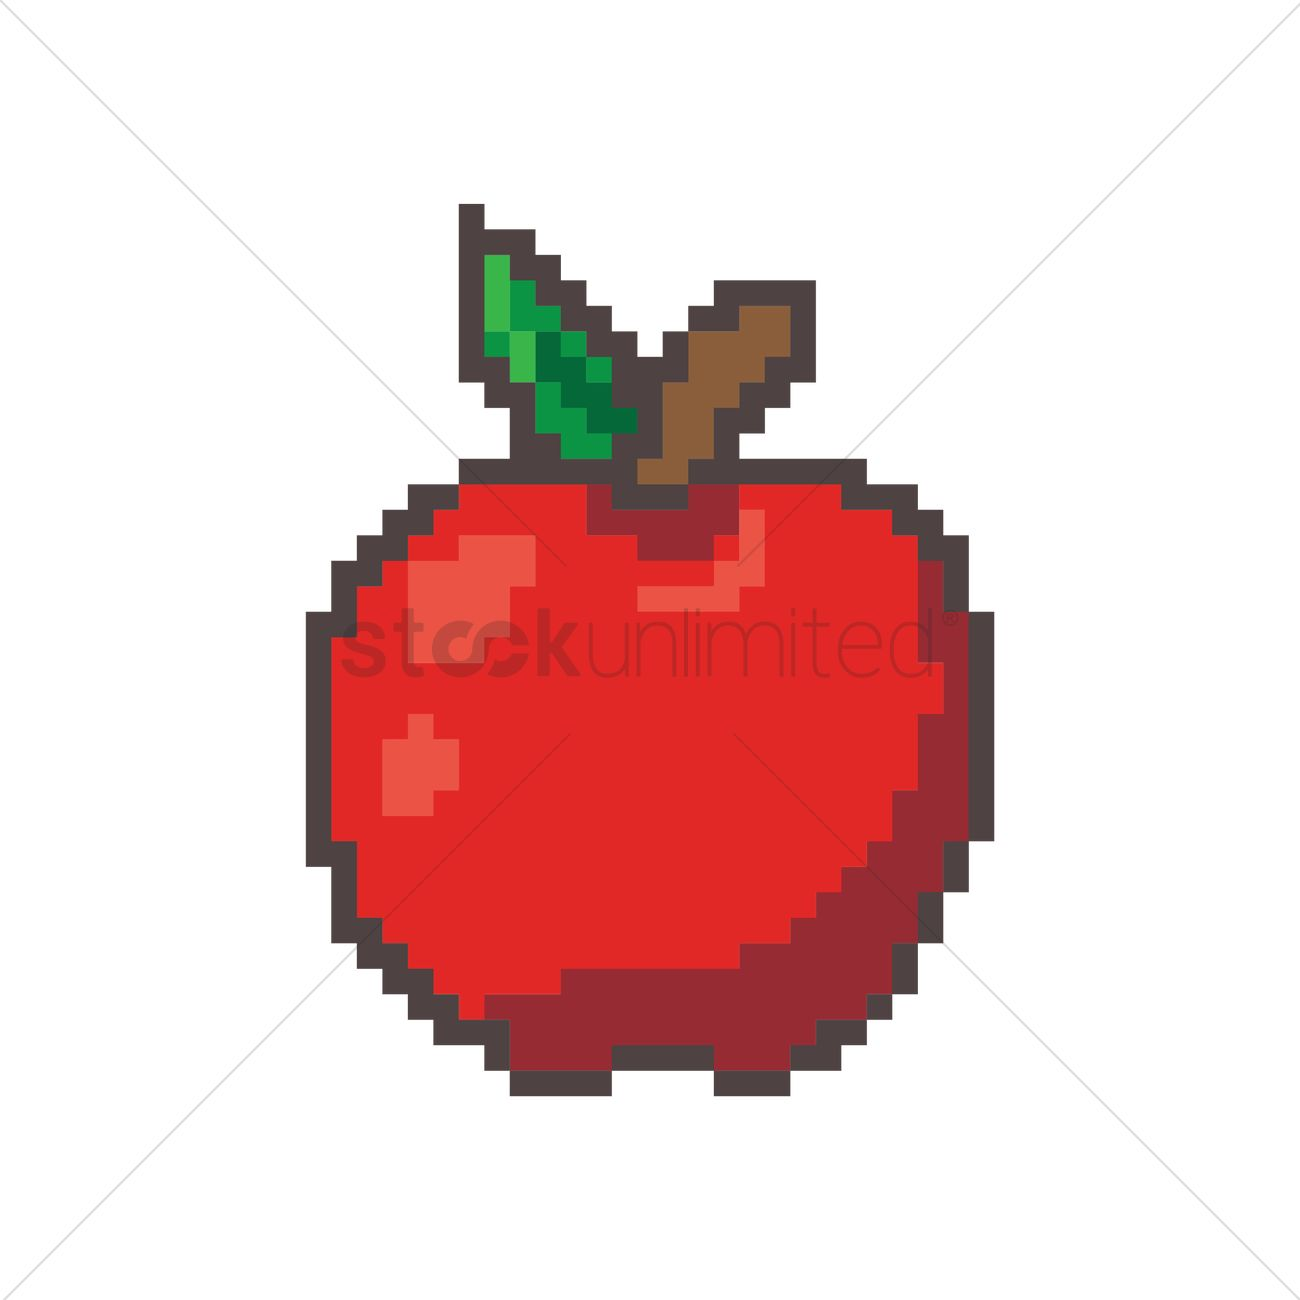 Pixel Art Red Apple Vector Image - 1957692